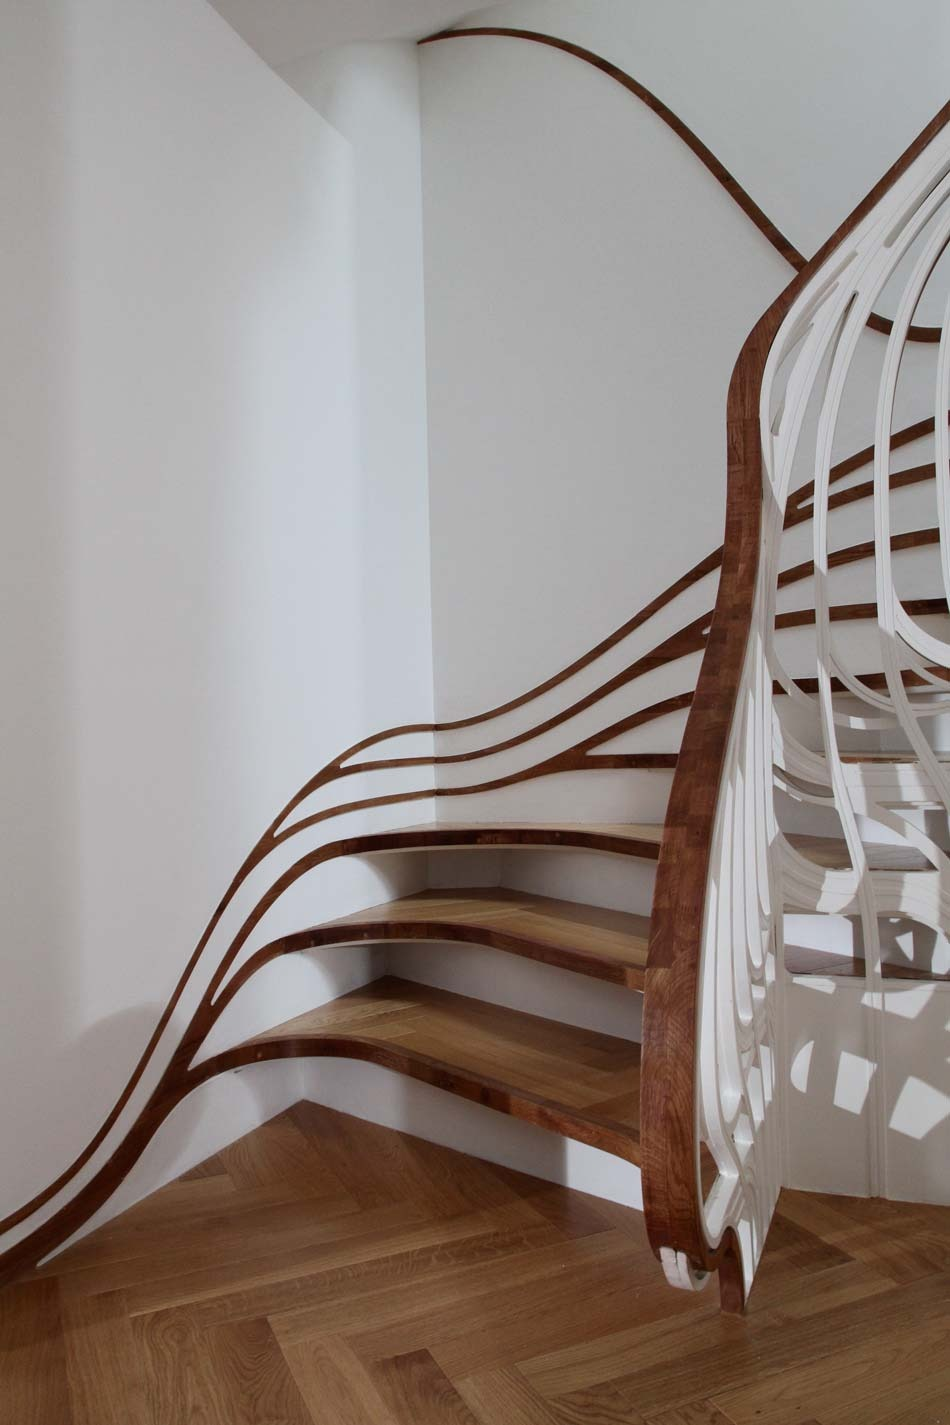 Unusual curved staircase digsdigs for Architecture spiral staircase